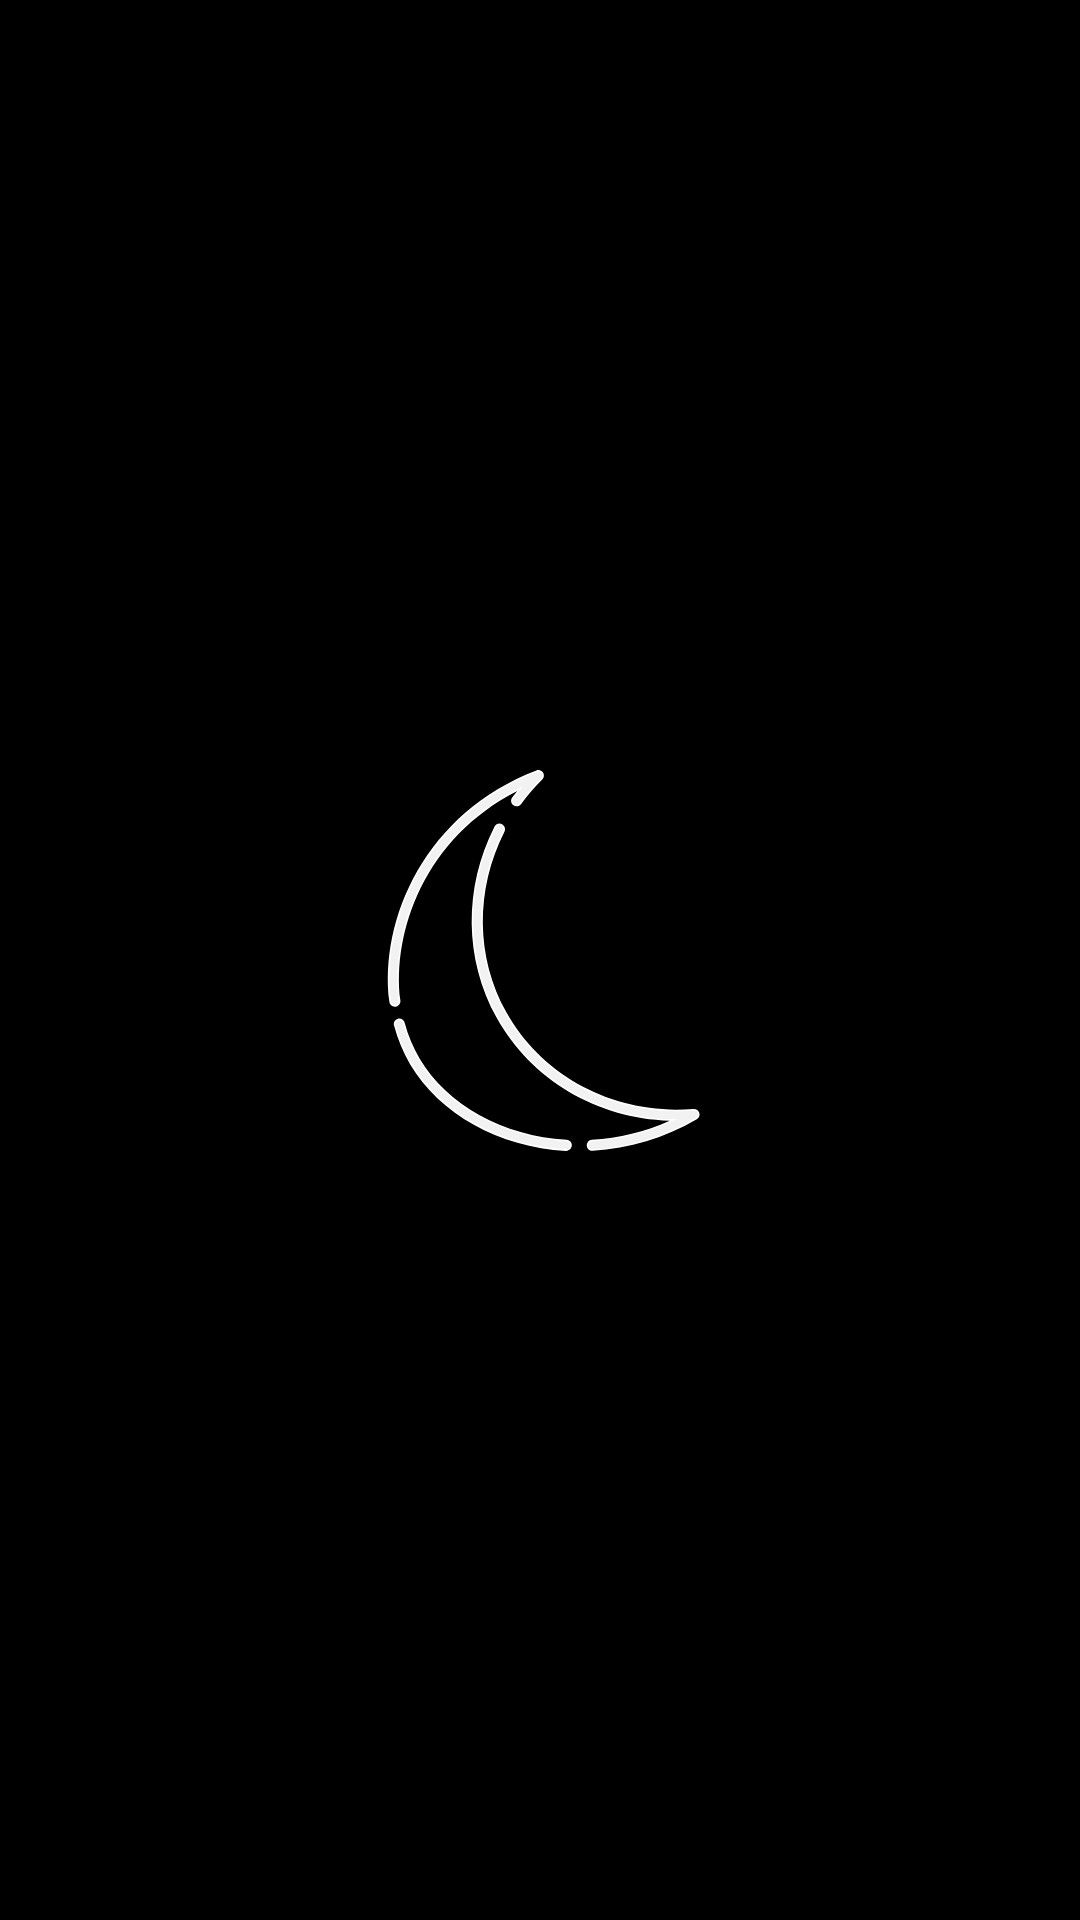 The Moon And Its Phases Black Background Minimalist Wallpaper In 2021 Minimalist Wallpaper Black Backgrounds Background